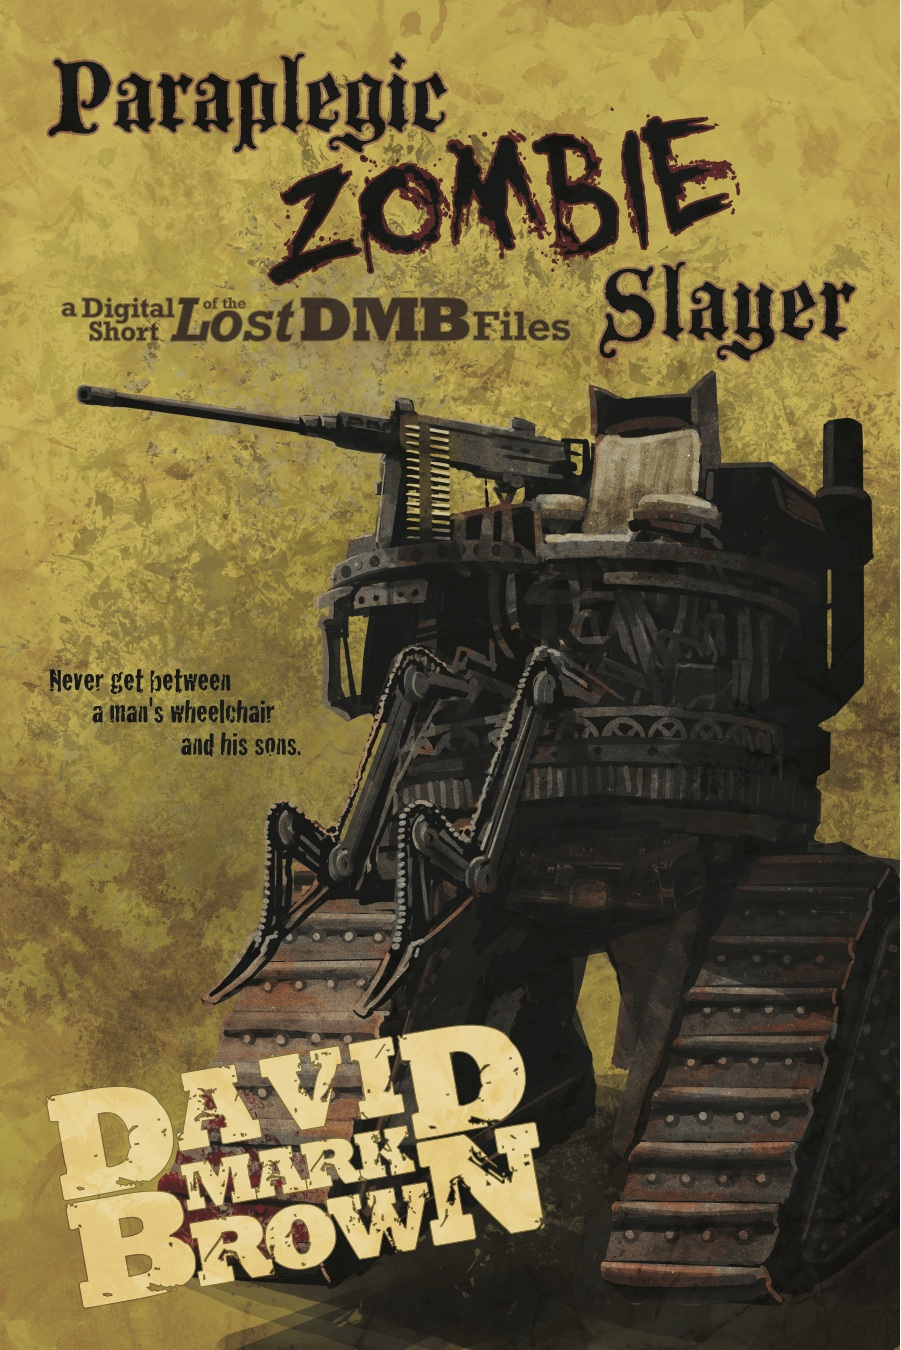 Paraplegic Zombie Slayer (Lost DMB Files #35) By: David Mark Brown